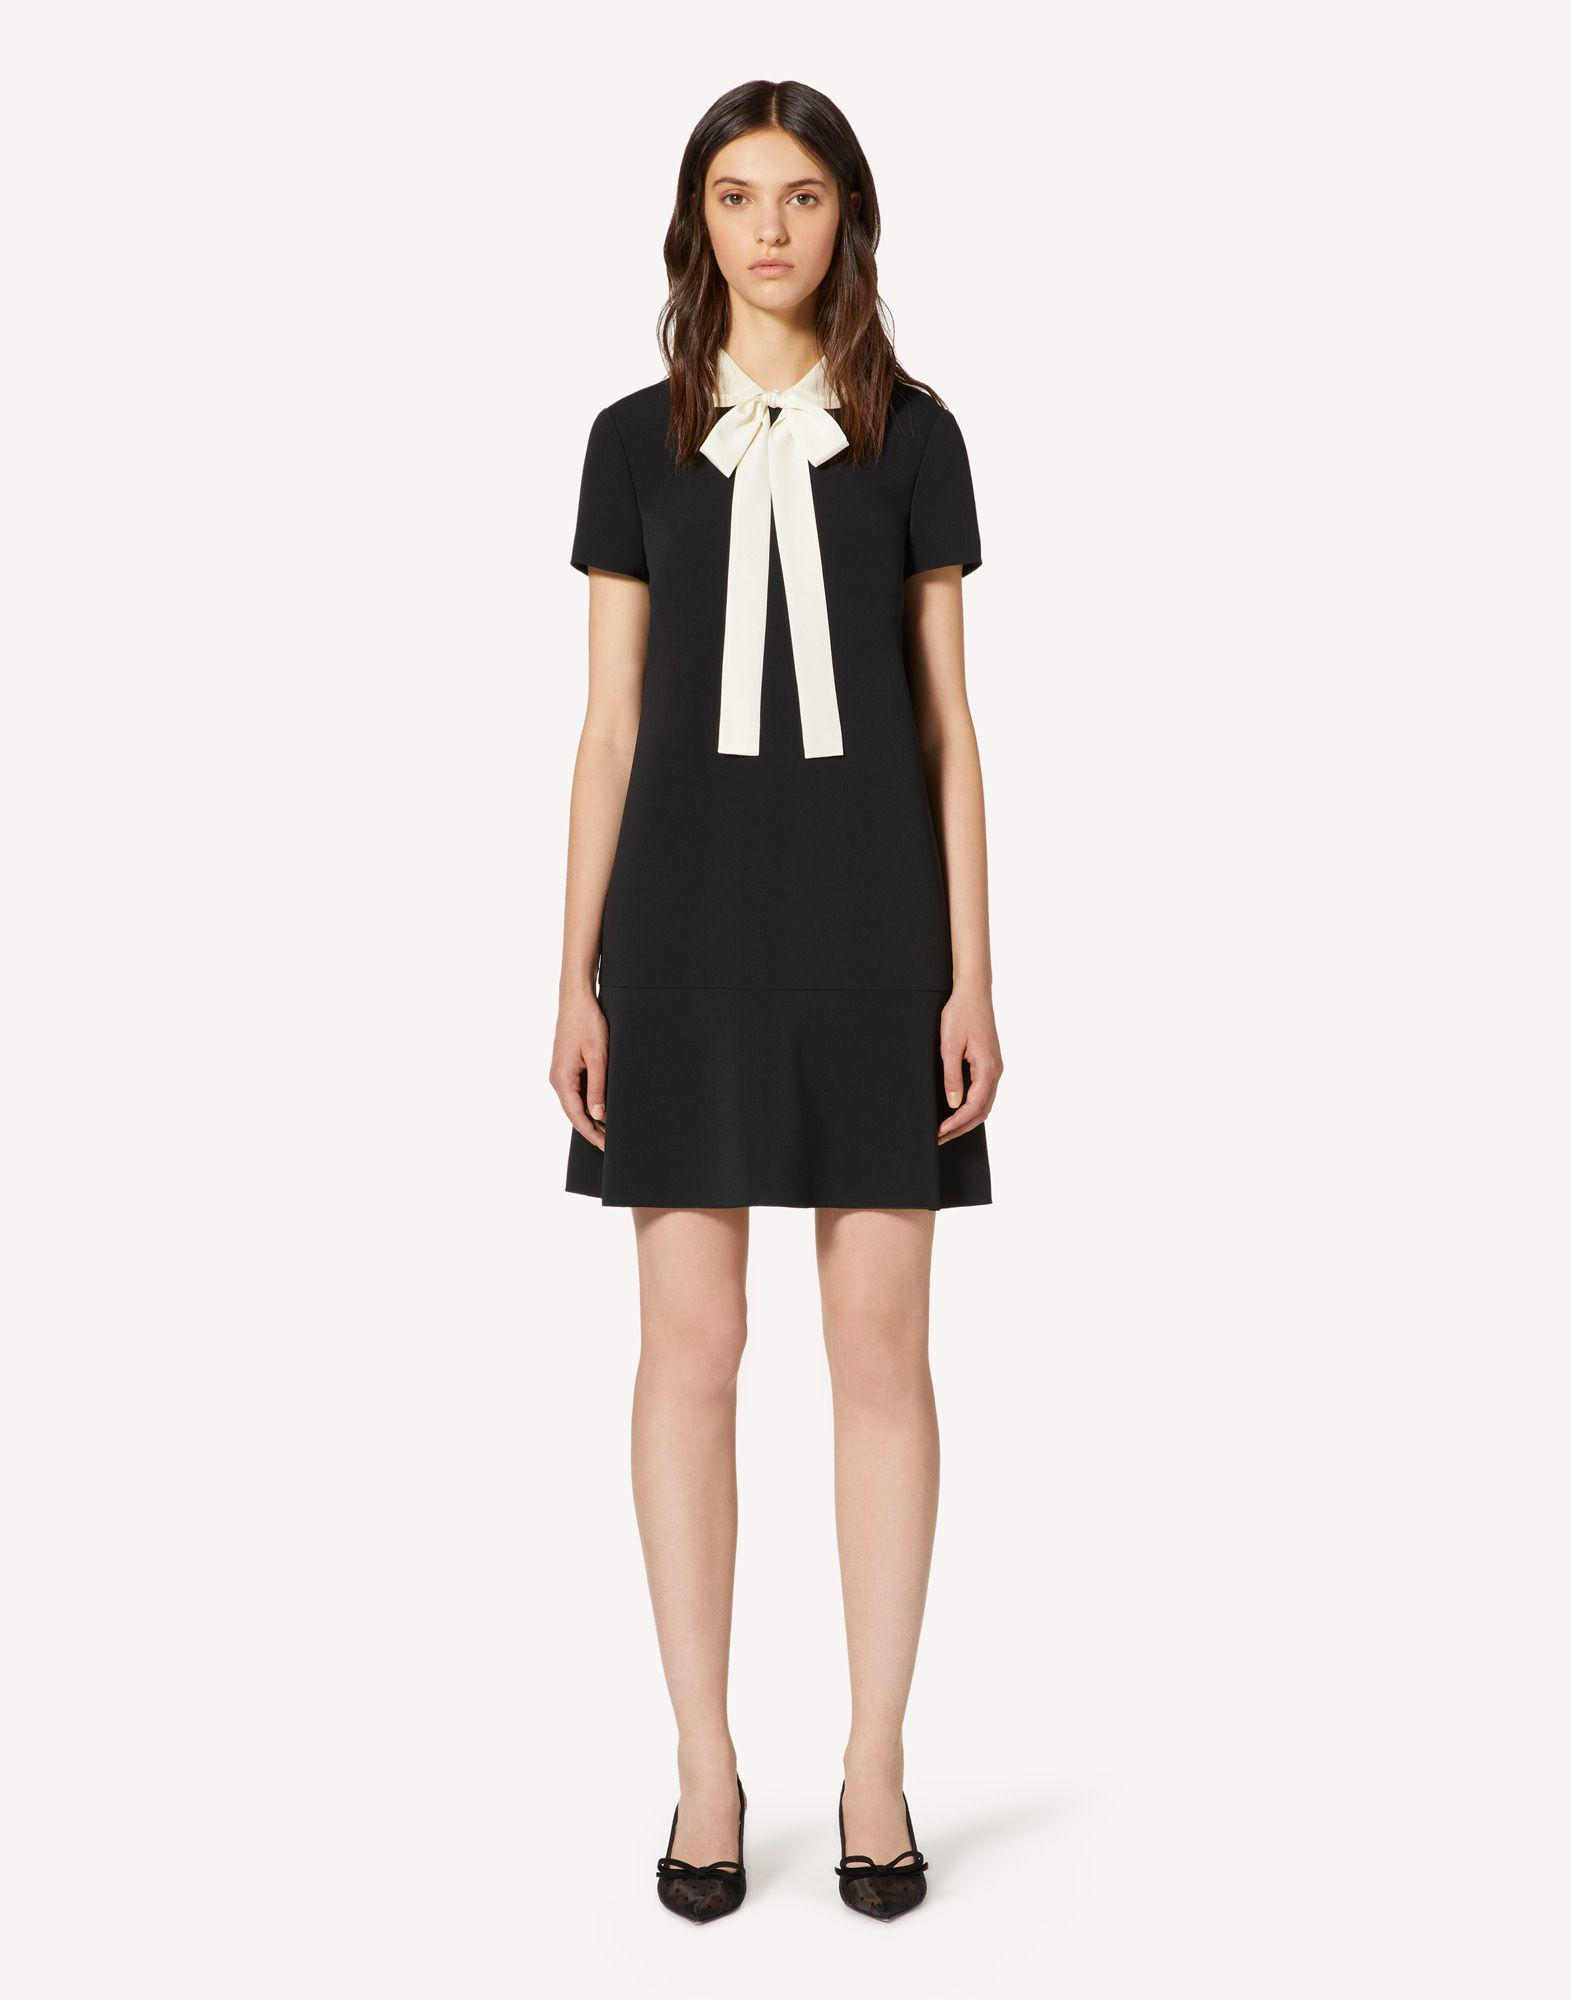 FRISOTTINO DRESS WITH COLLAR DETAIL